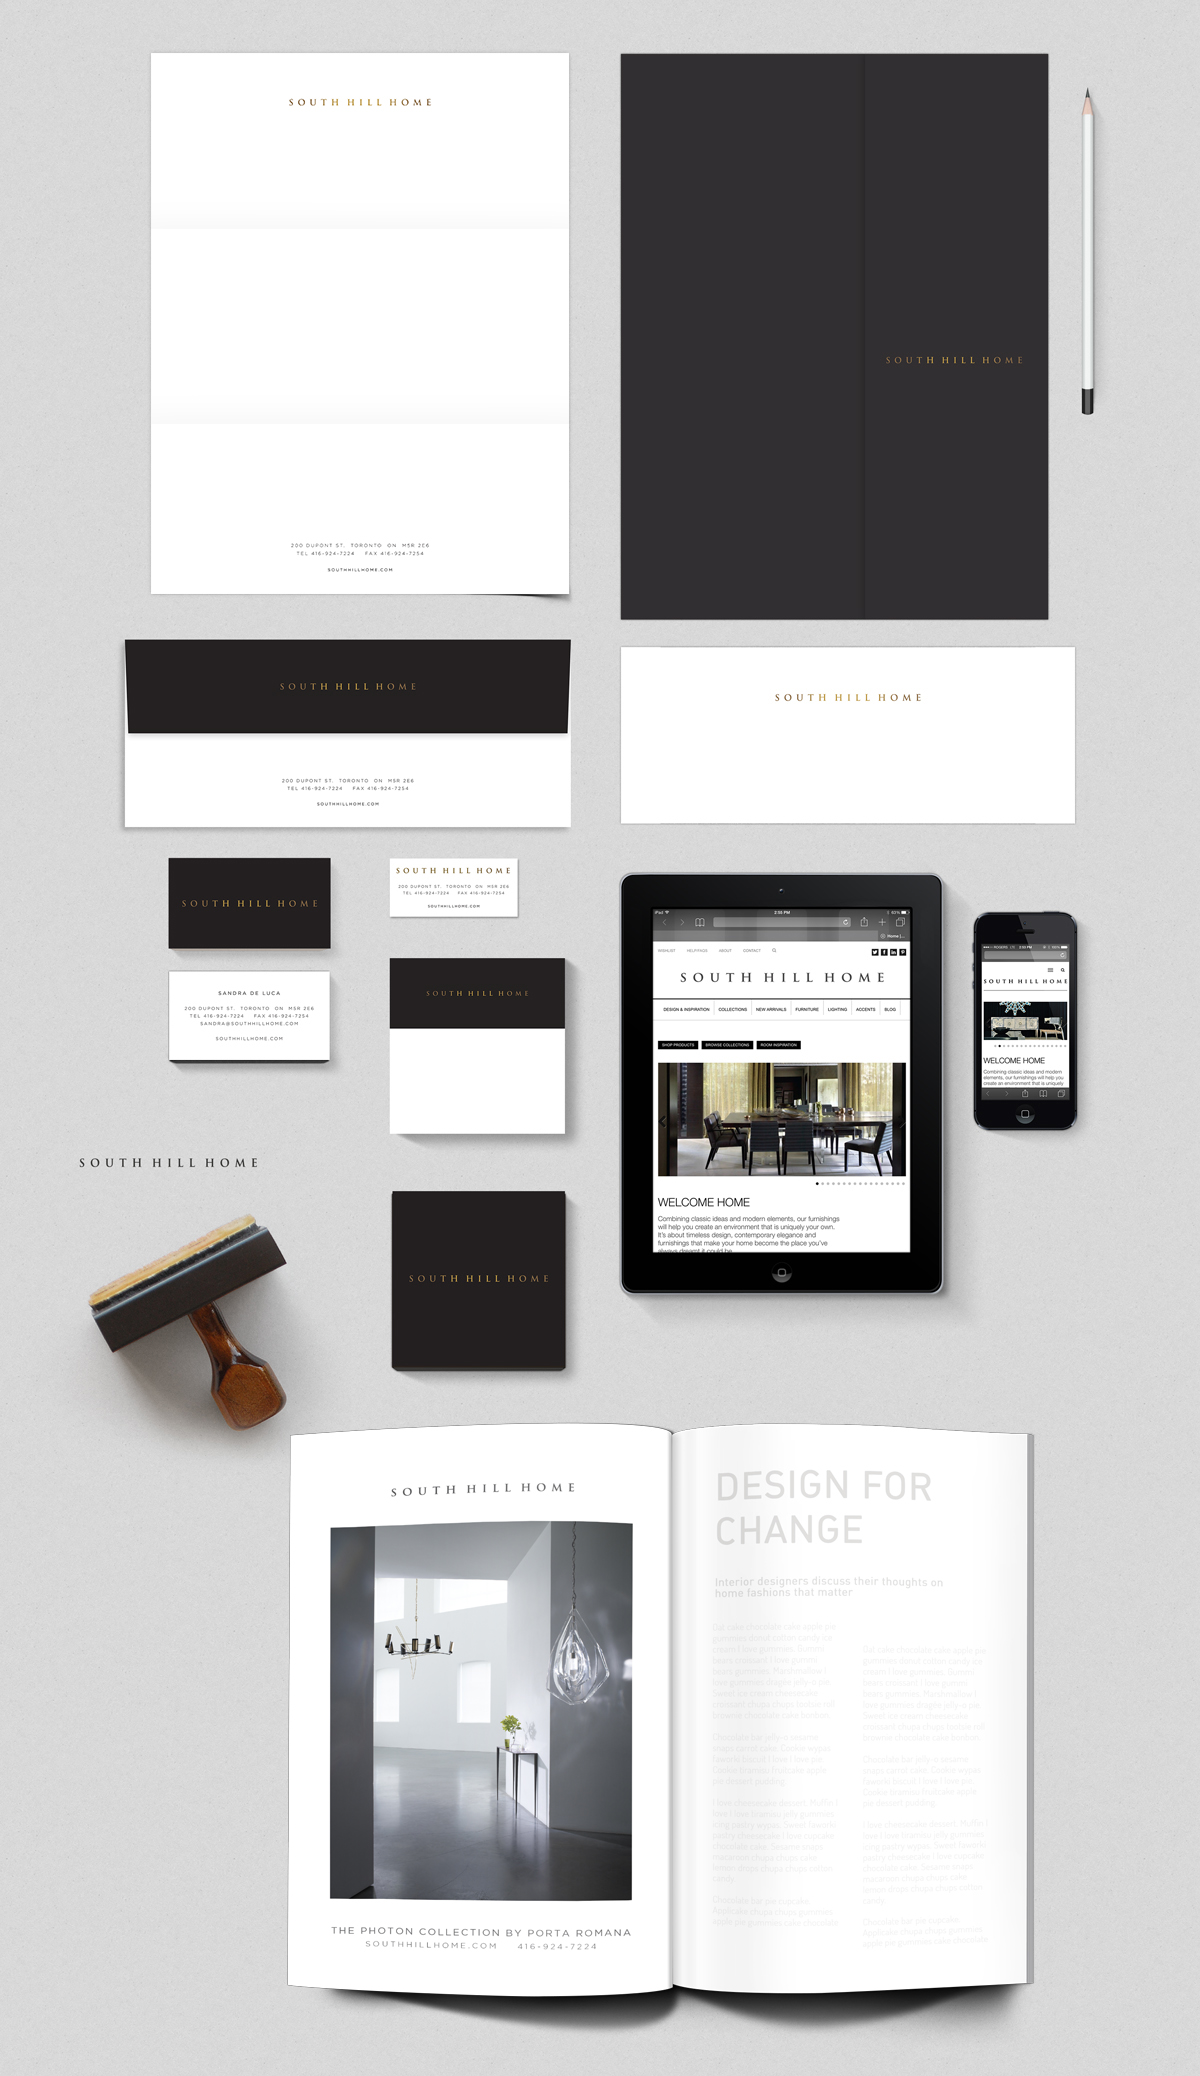 C+C_SouthHillHome_Rebrand_Stationery